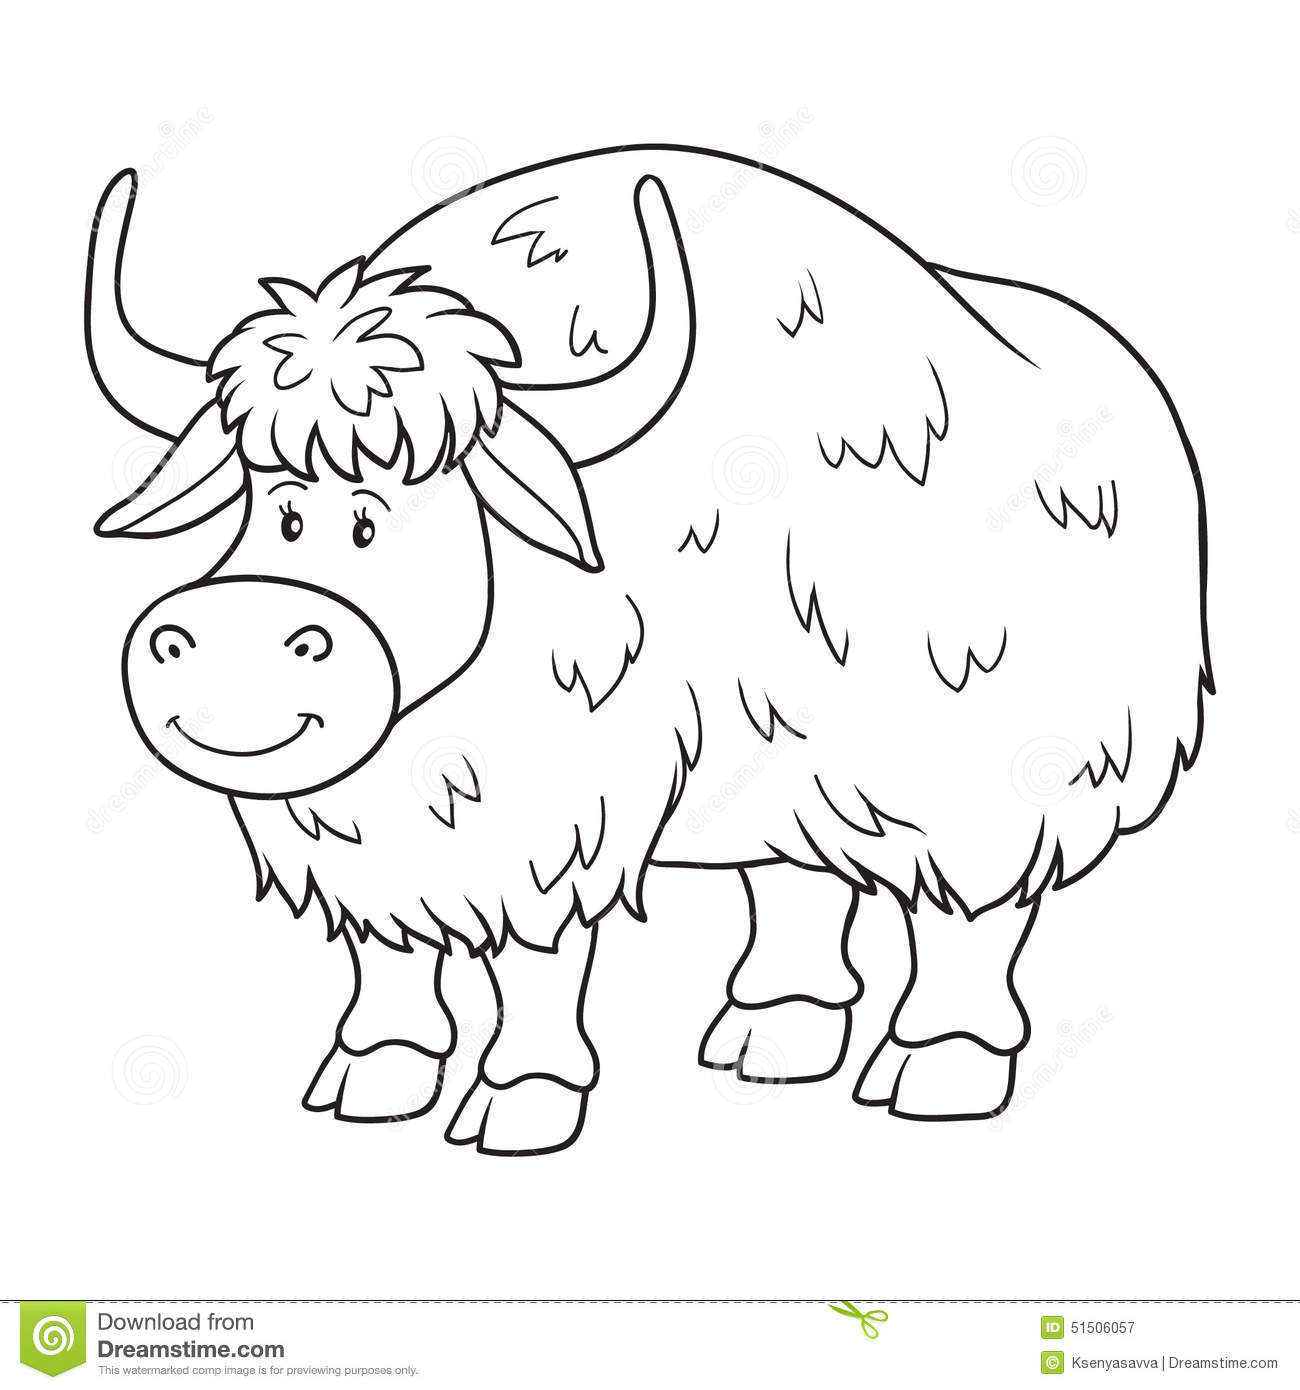 Yak clipart black and white - photo#23